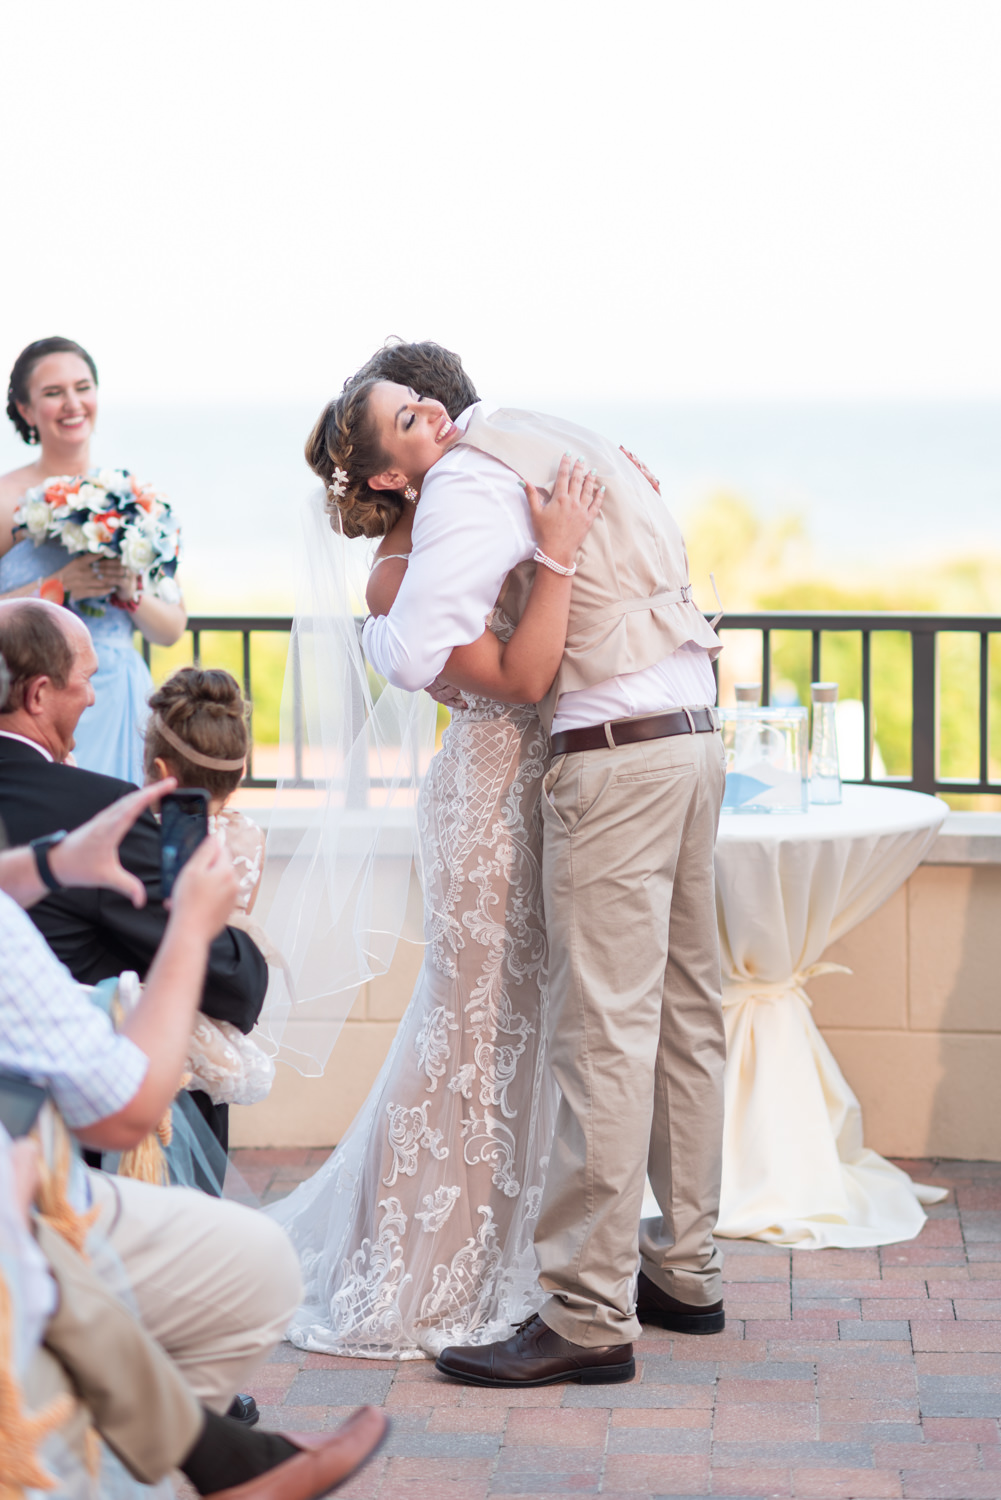 First kiss - Grande Dunes Ocean Club - Myrtle Beach